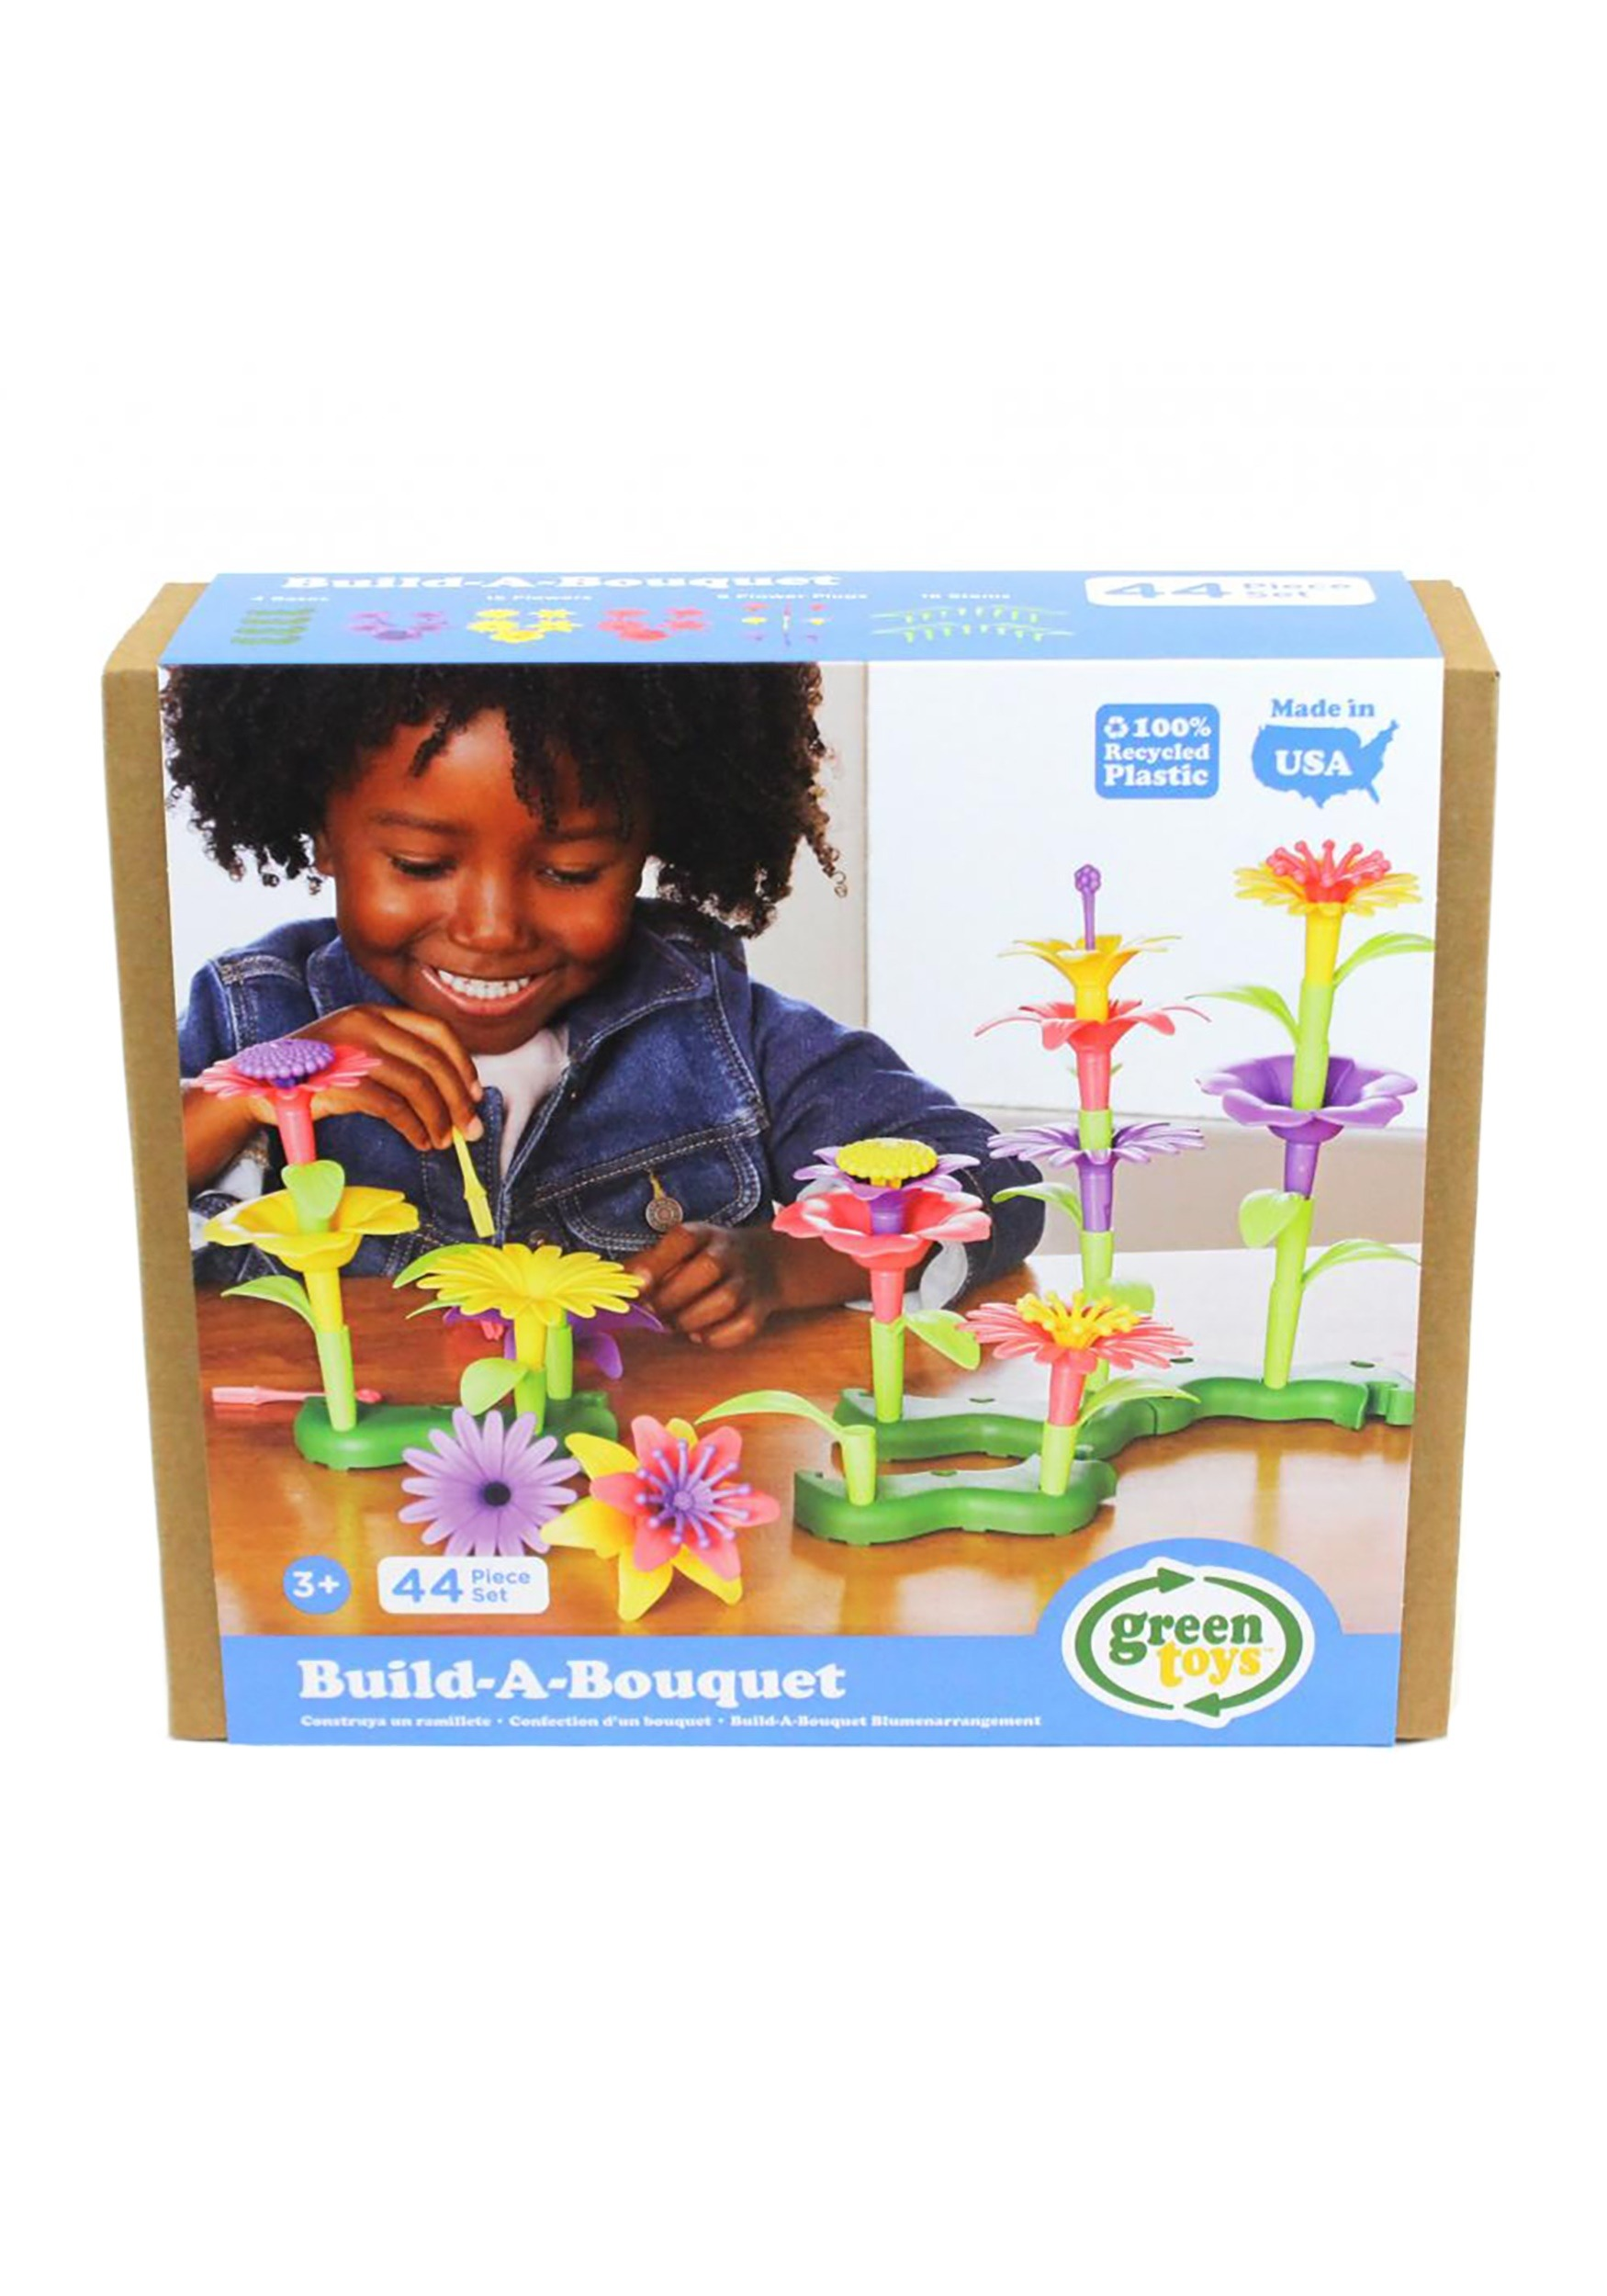 Green Toys Build-a-Bouquet Play set